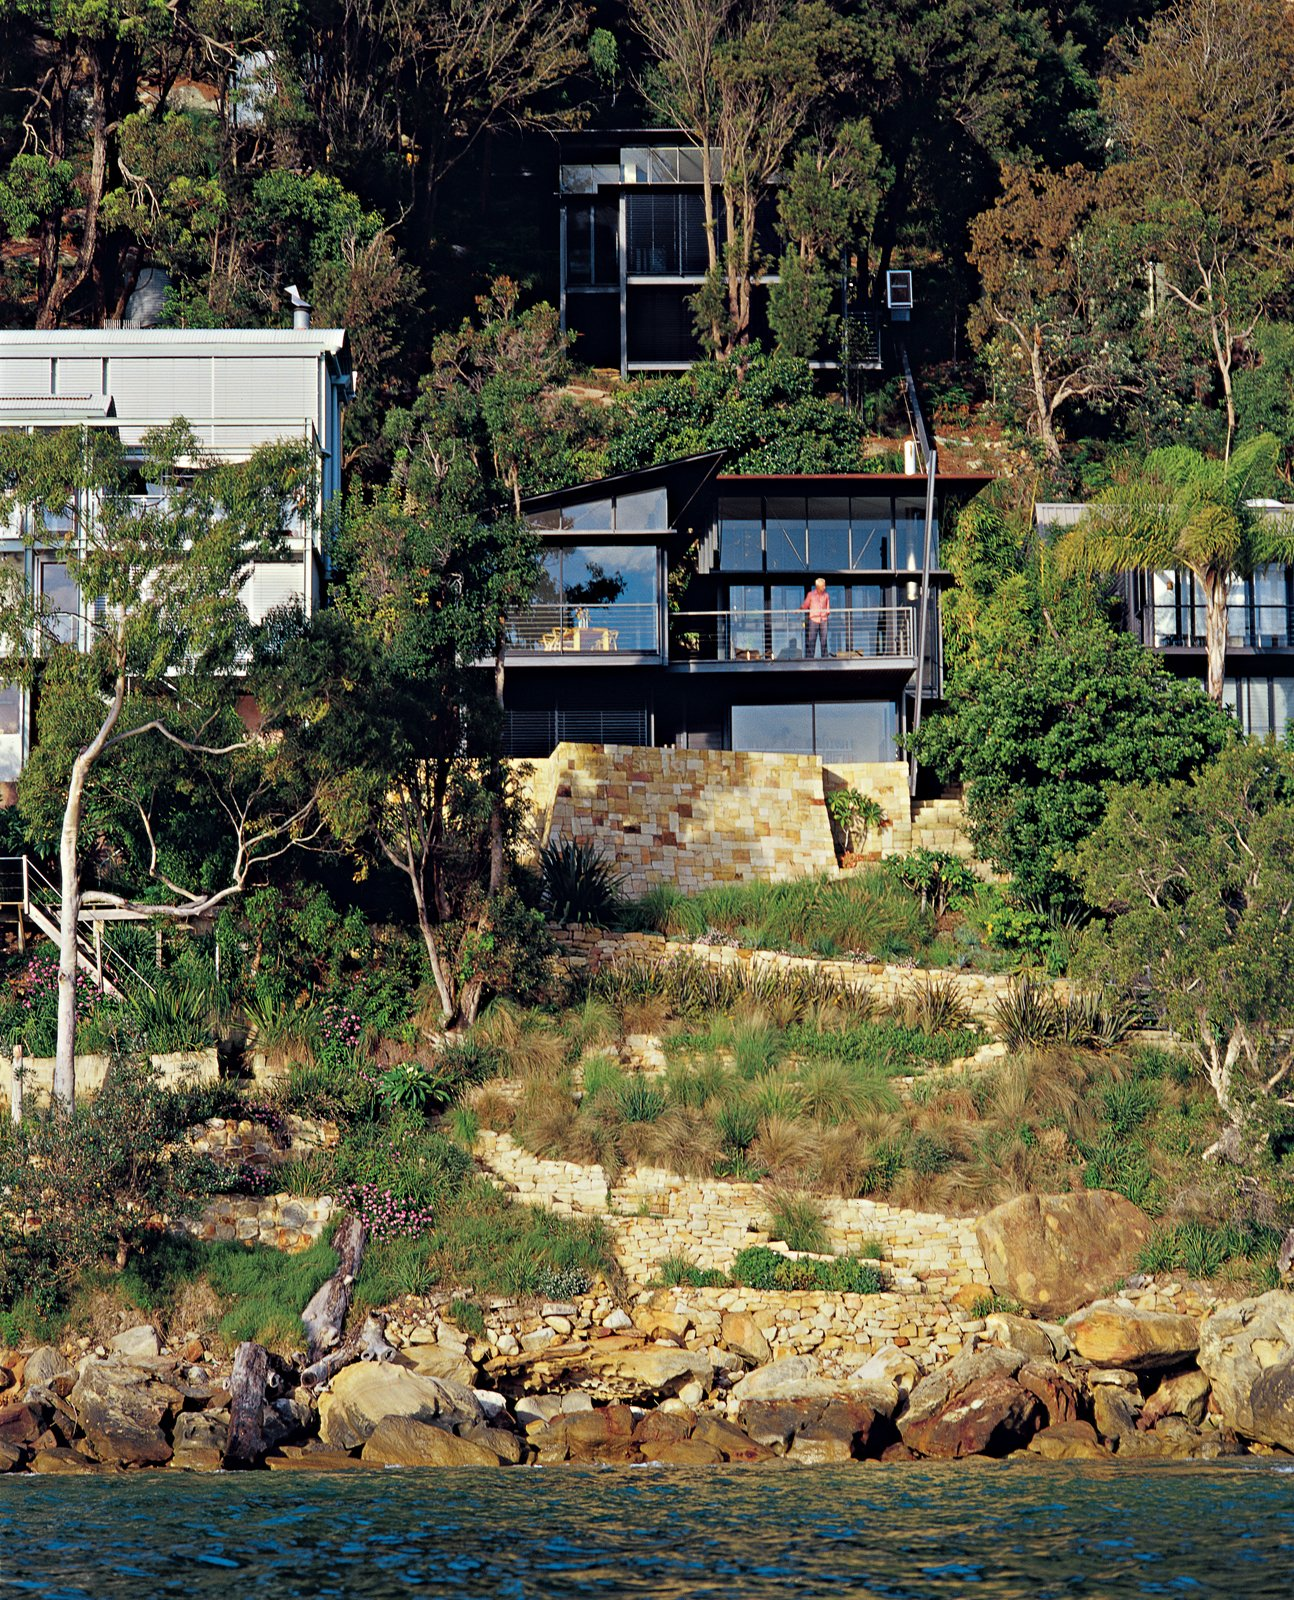 Set high on a cliff along the south end of the beach, this residence of three glass-and-copper pavilions offers a mighty reward for conquering the steep ascent.